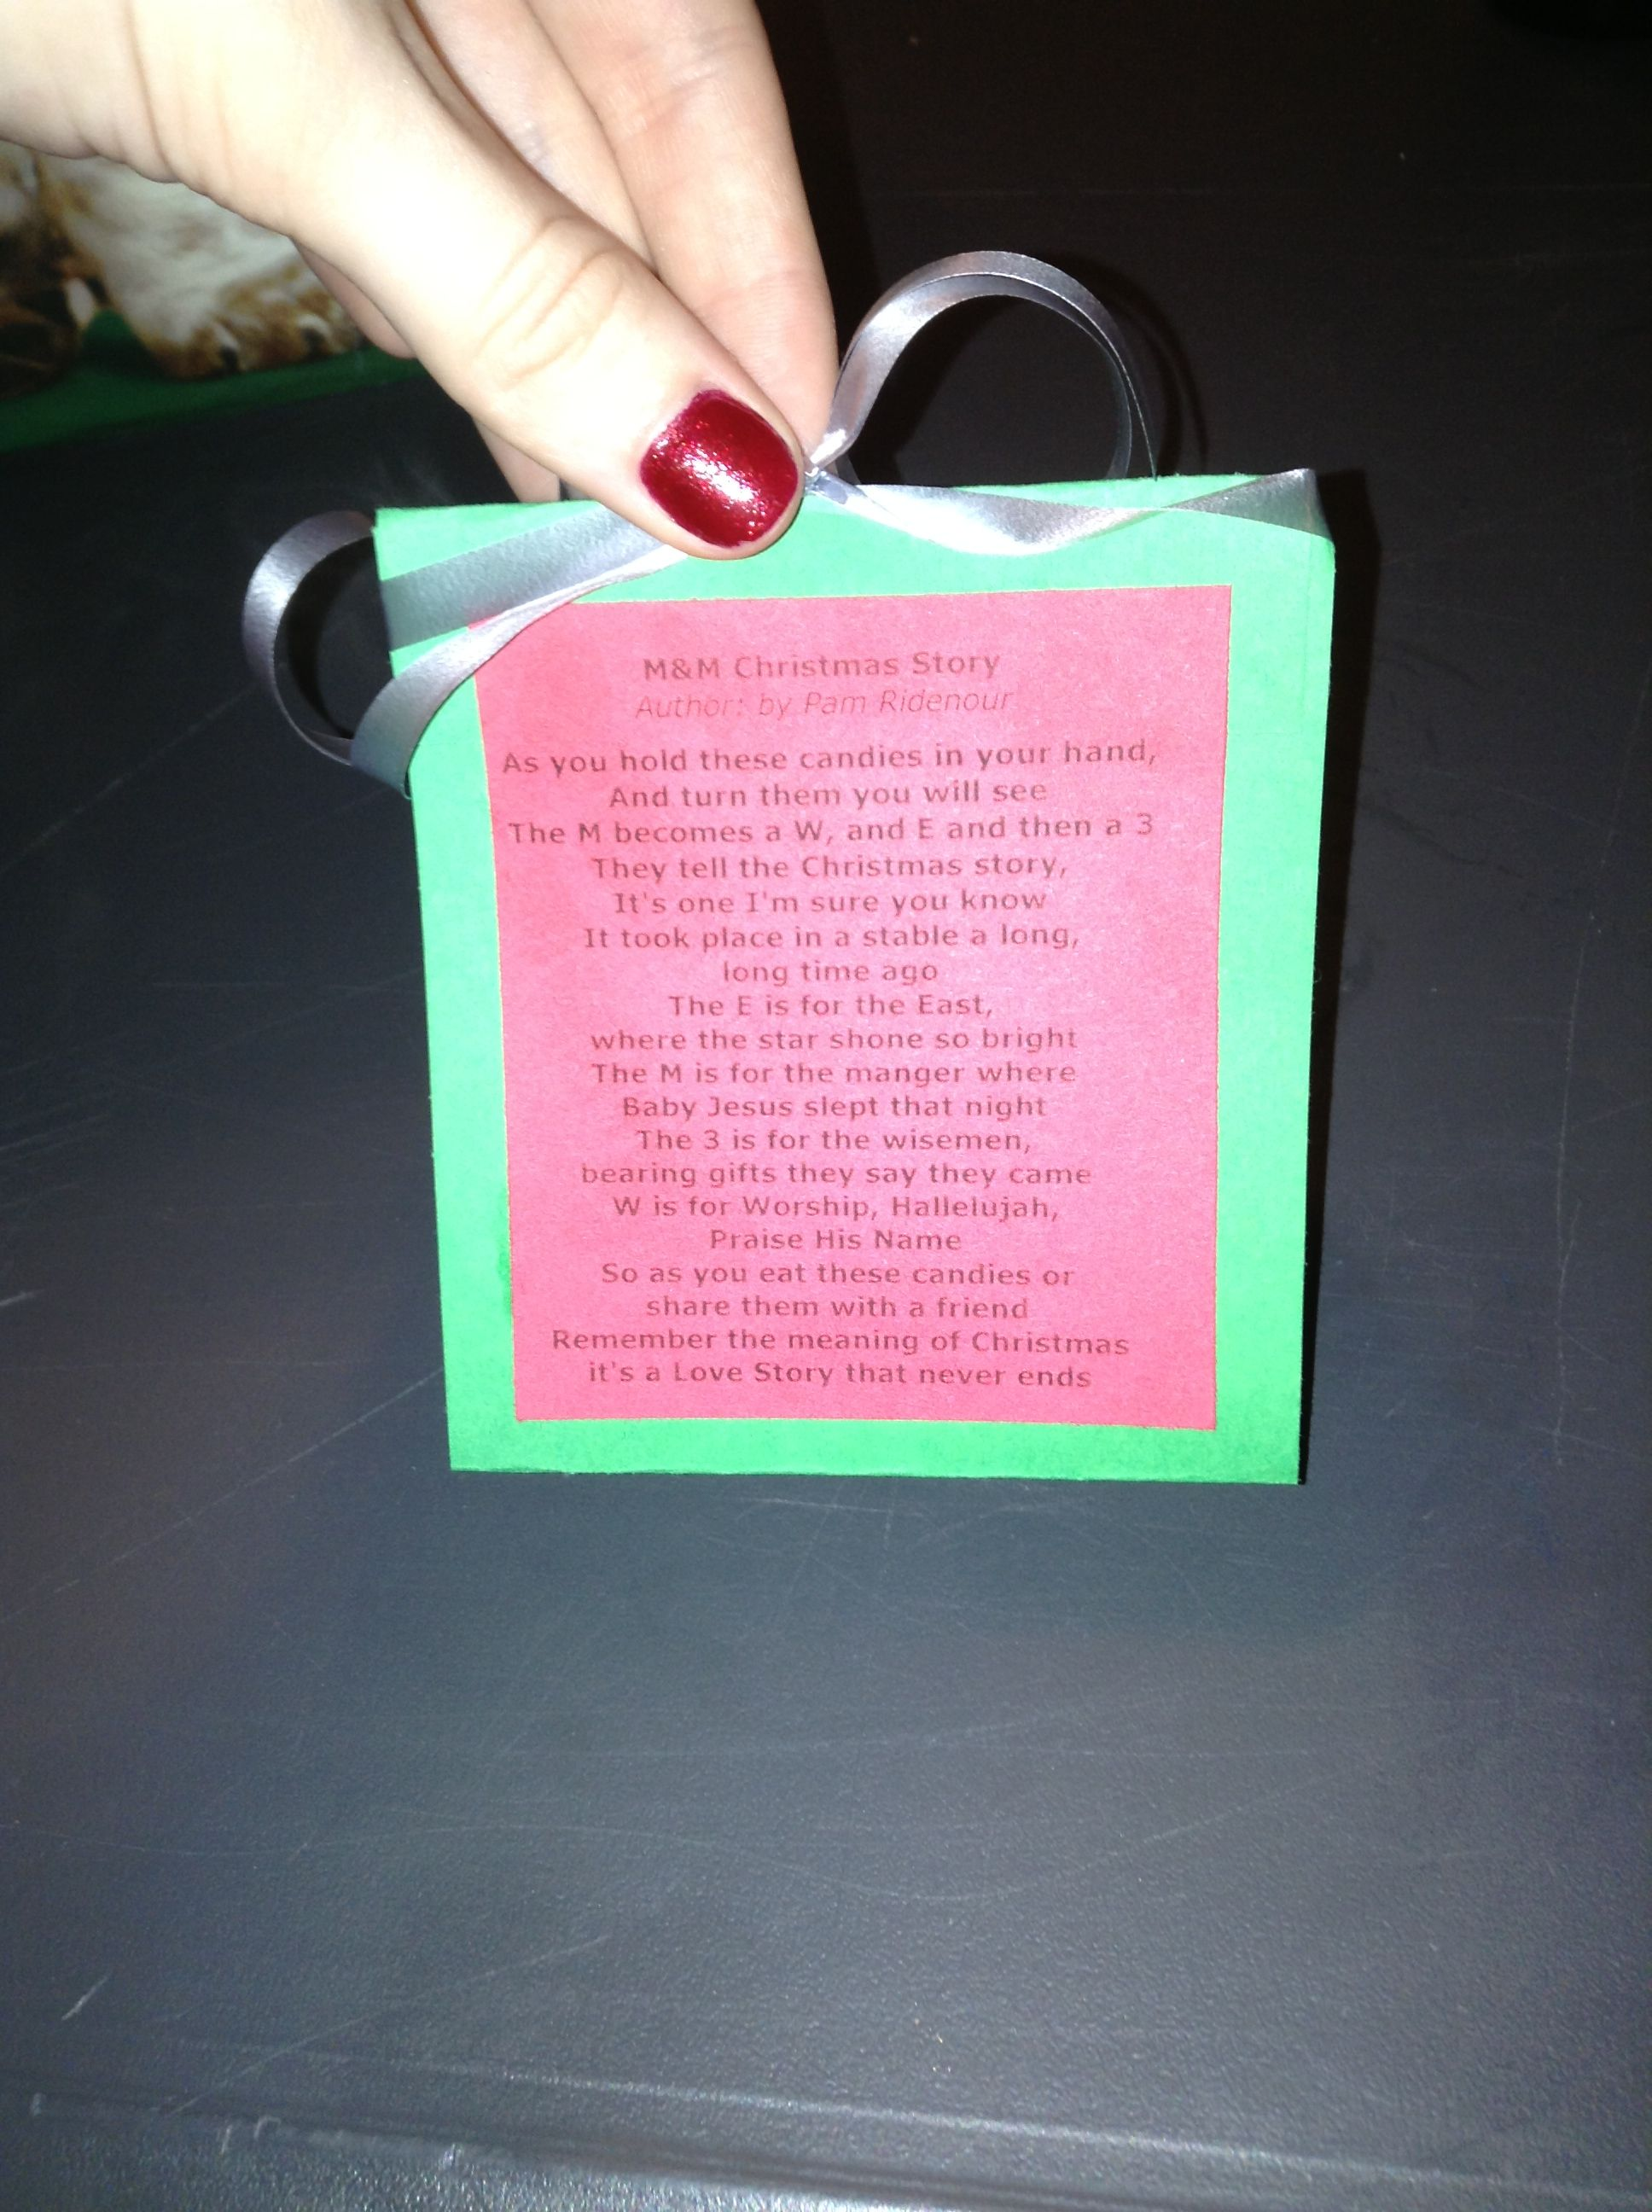 The M Christmas Story. Attach a small plastic bag of red and green m Perfect to hand out at church or at a Christmas party.